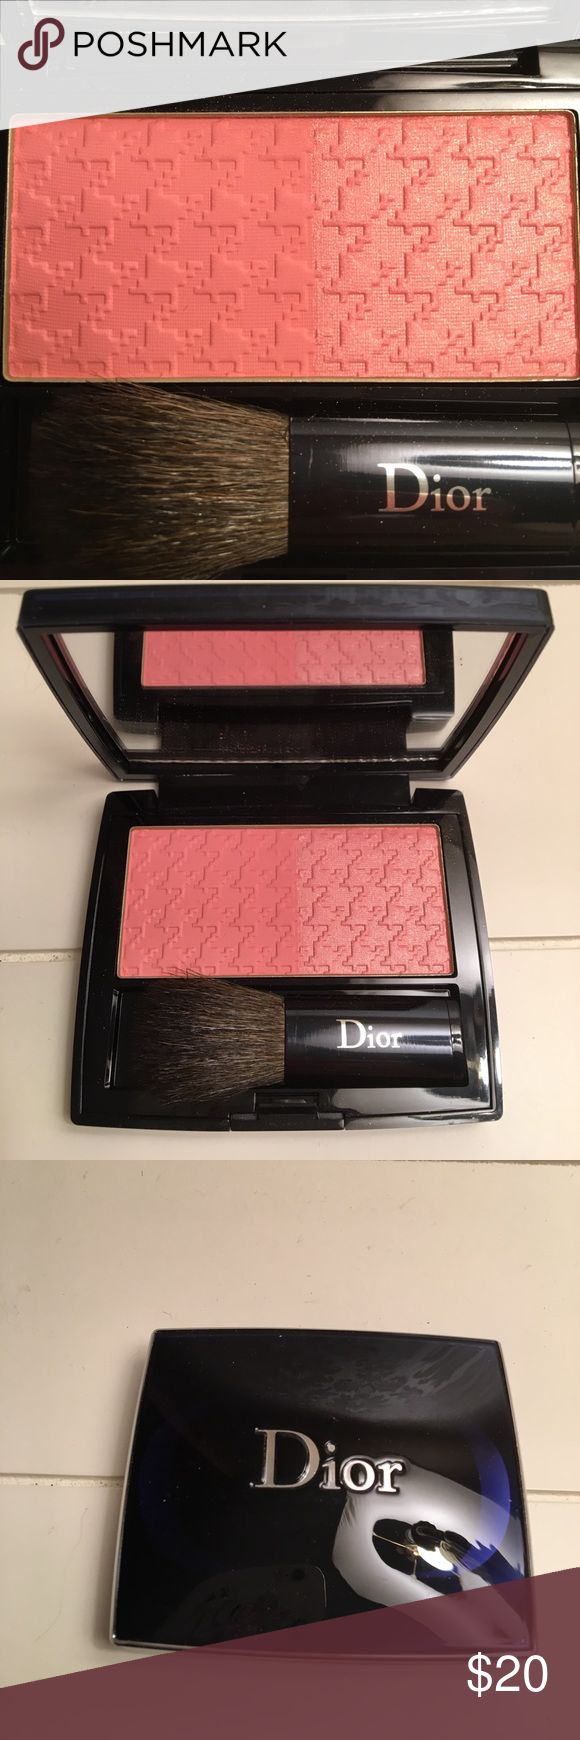 NWOT Dior Blush. Never used. Brand new condition. Brush has never been used also. Half of blush has shimmer. I do not have the box or dust bag. Christian Dior Makeup Blush